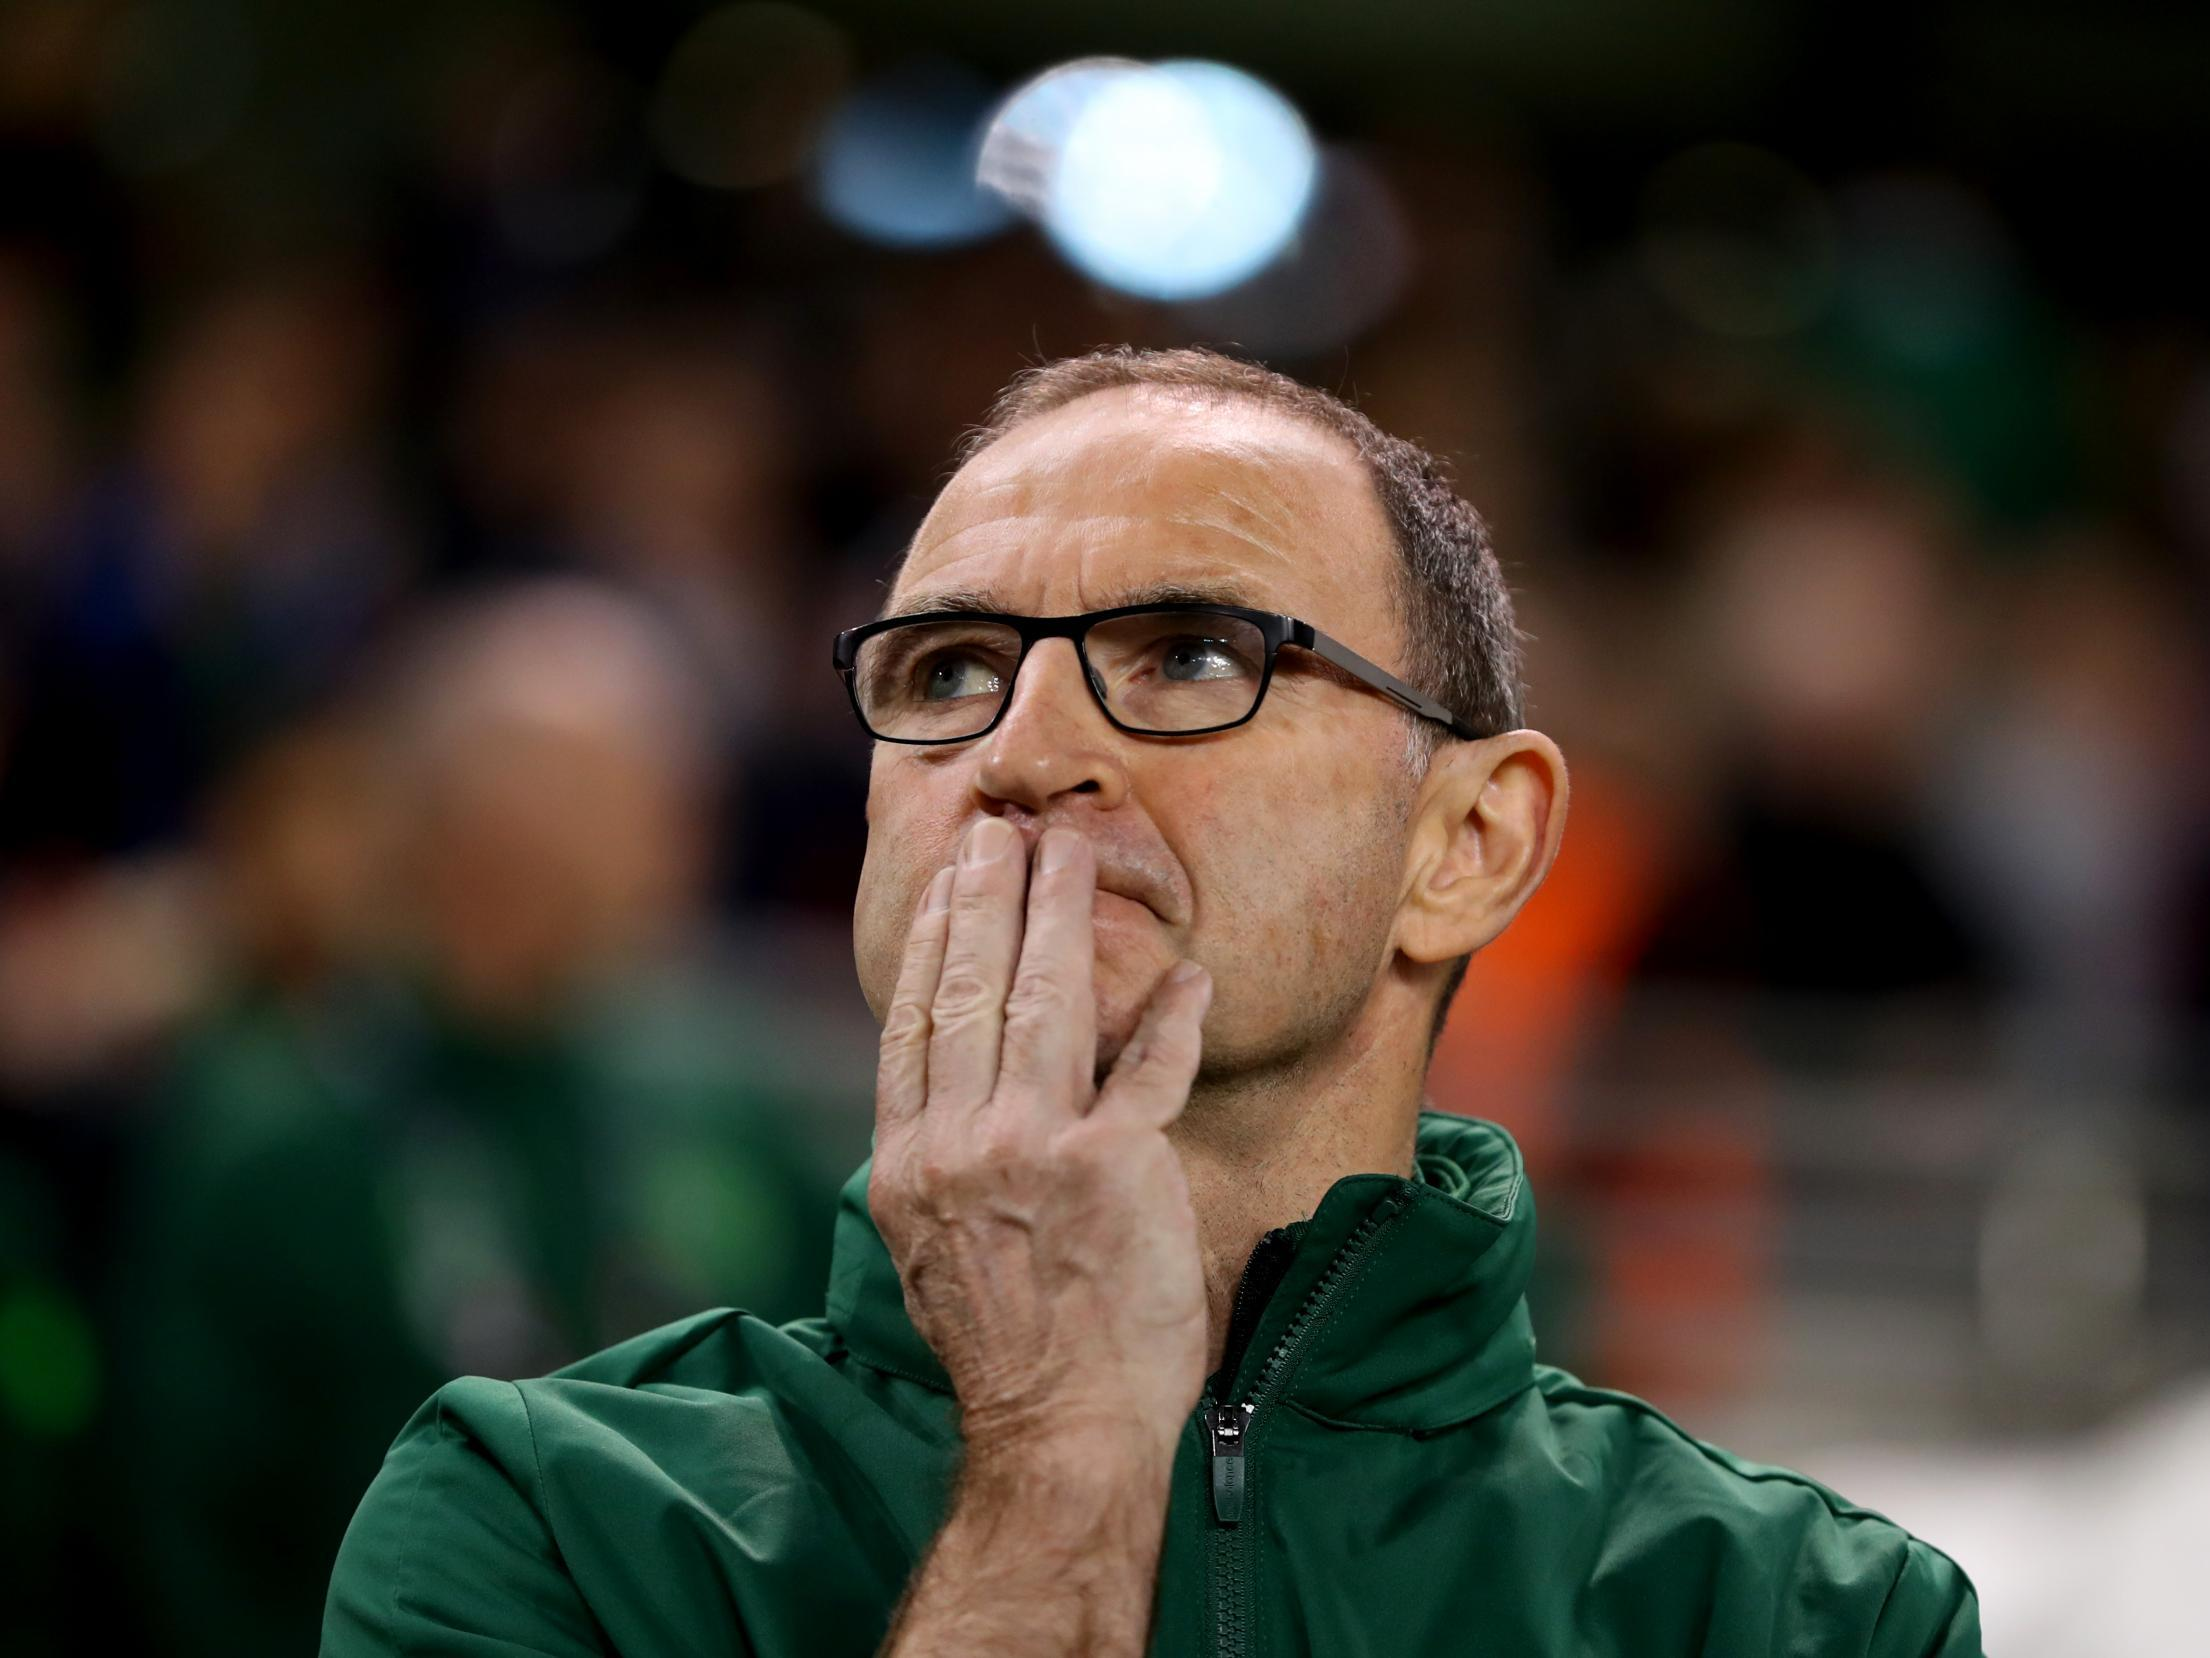 Martin O'Neill defiant in the face of rising scrutiny over Republic of Ireland job